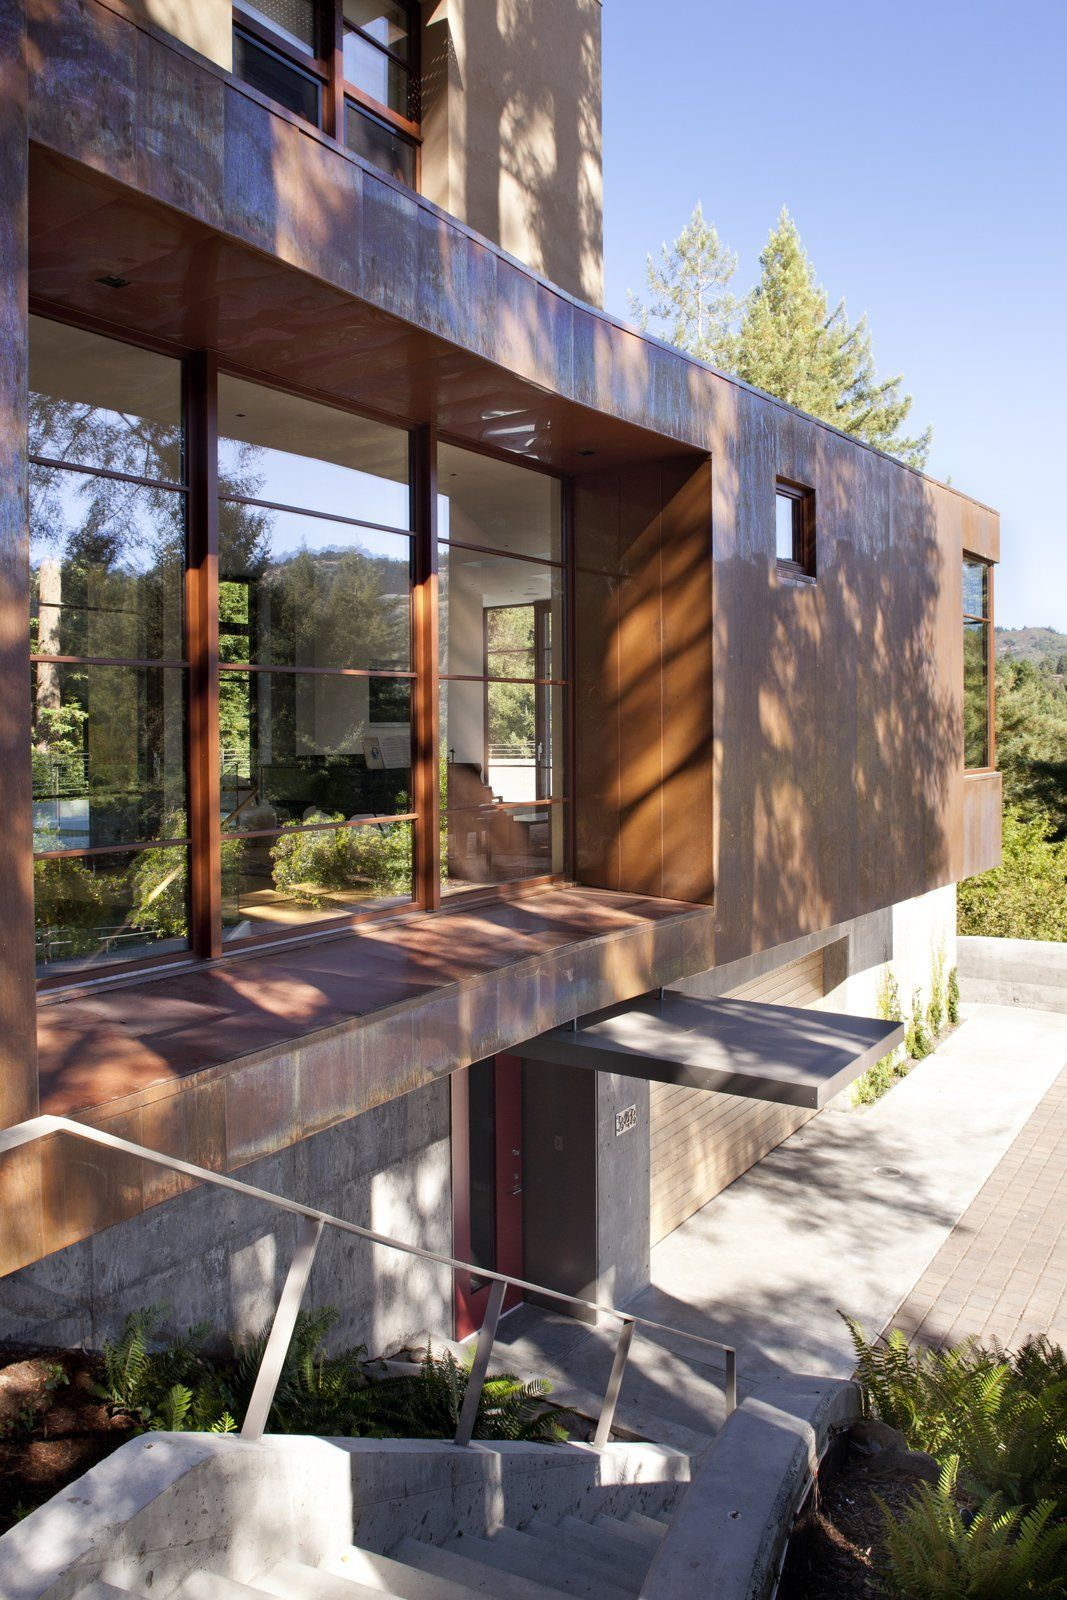 Exterior House Designs Exterior Modern With Concrete Patio Flat Roof: Modern Home With Exterior, Concrete Siding Material, House, Metal Roof Material, Metal Siding